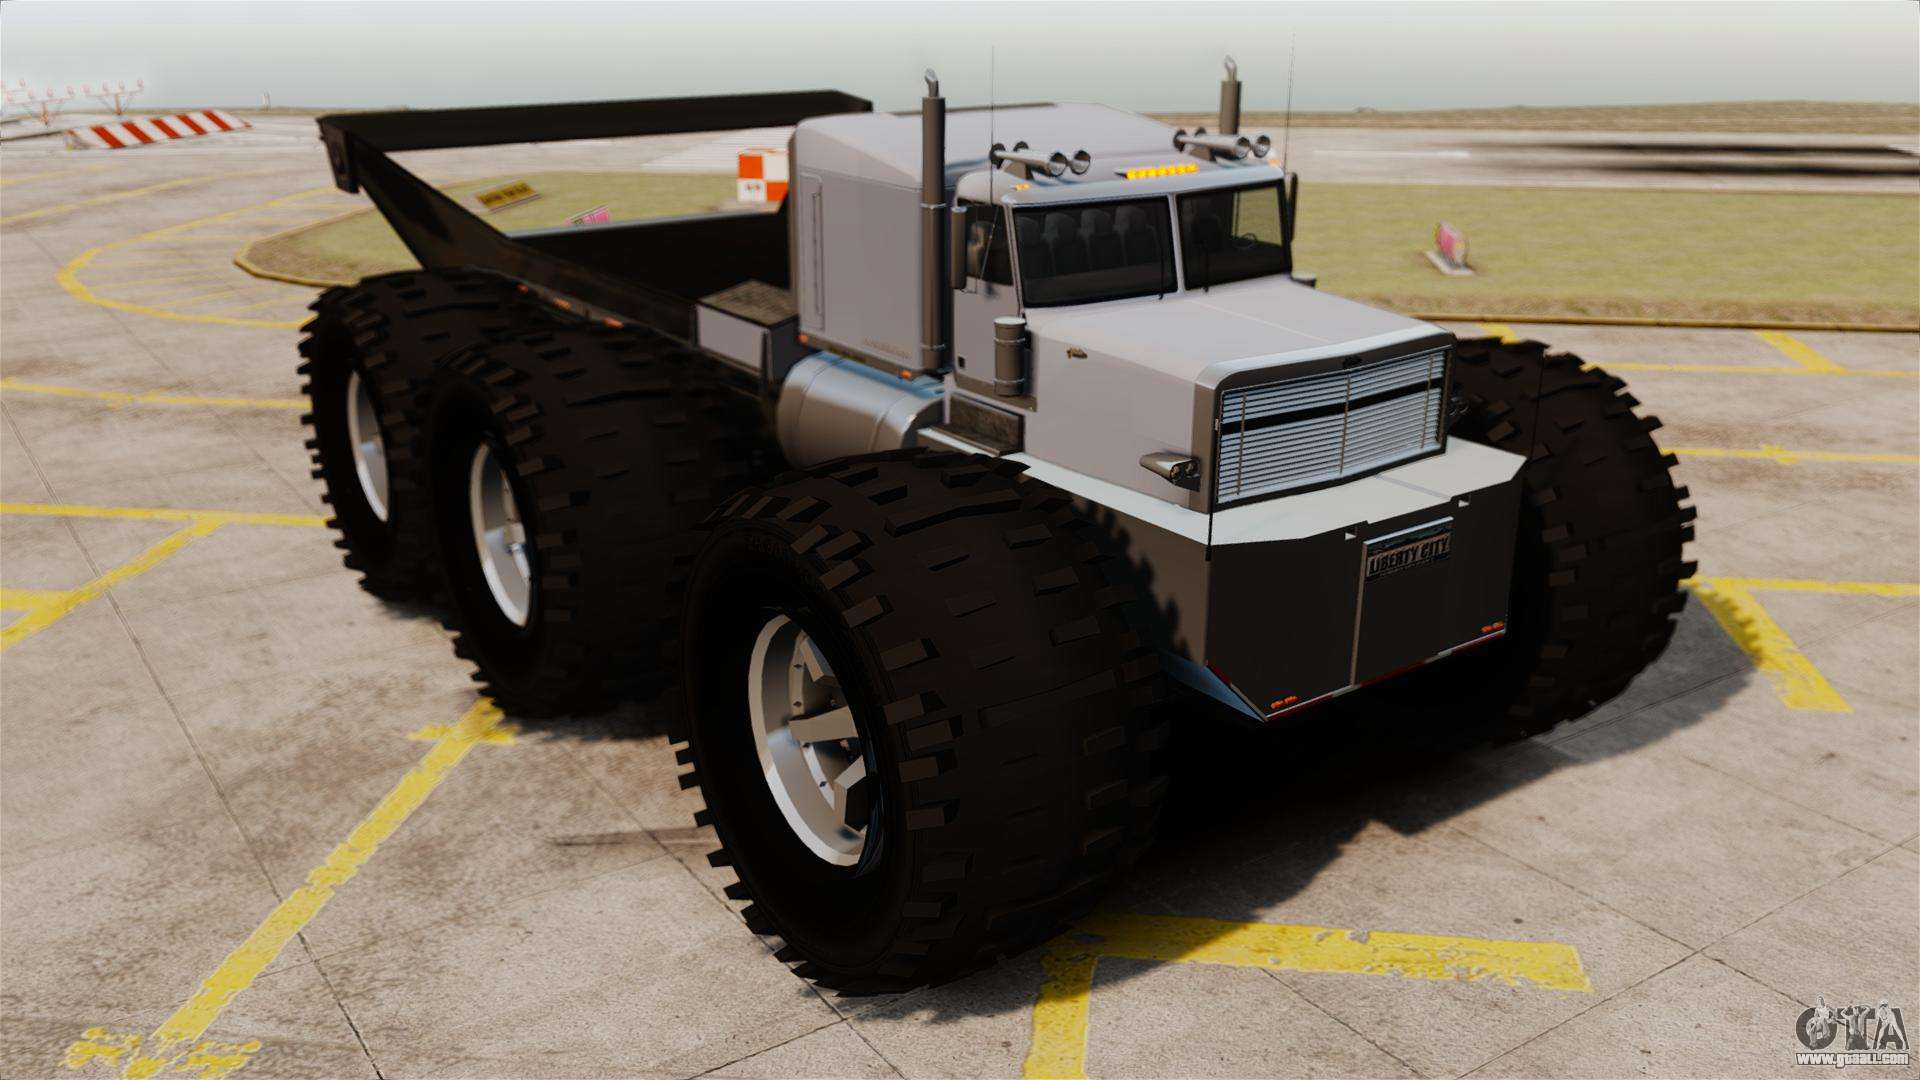 vehicle convert this monster truck please add on if possible